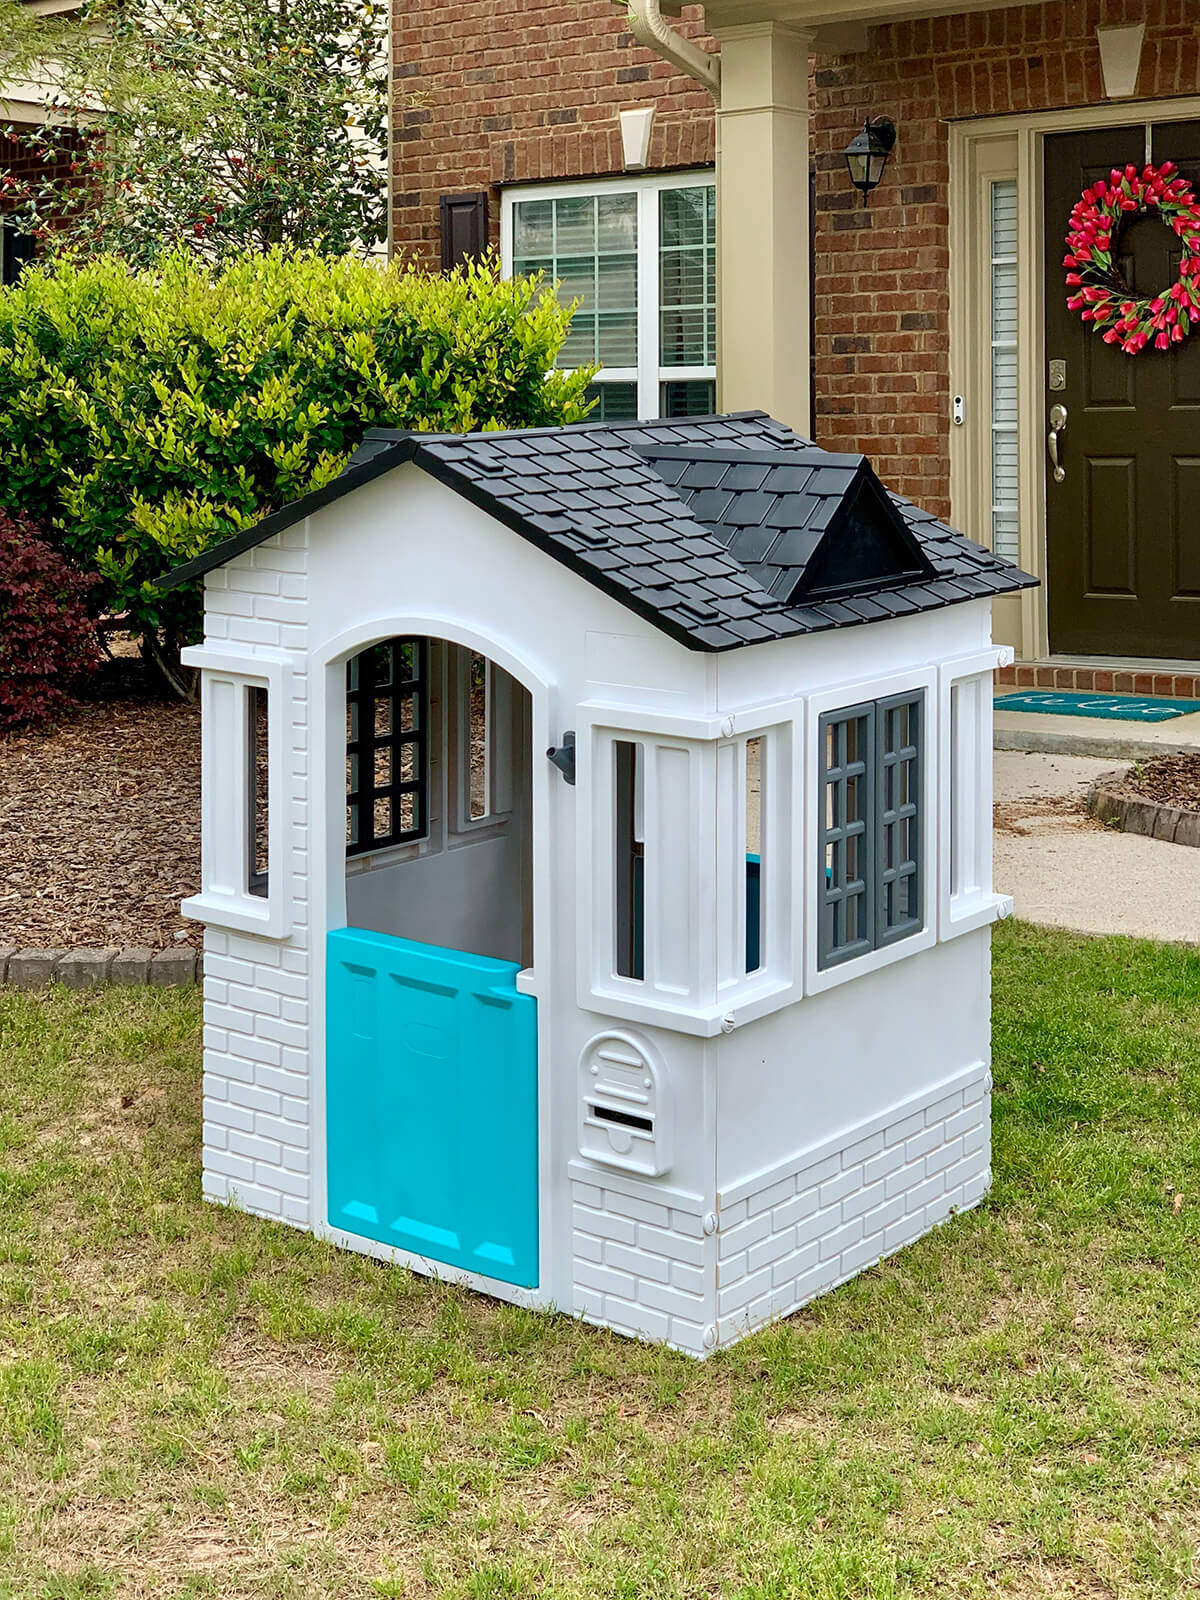 Simple Plastic Playhouse Re-Design Project